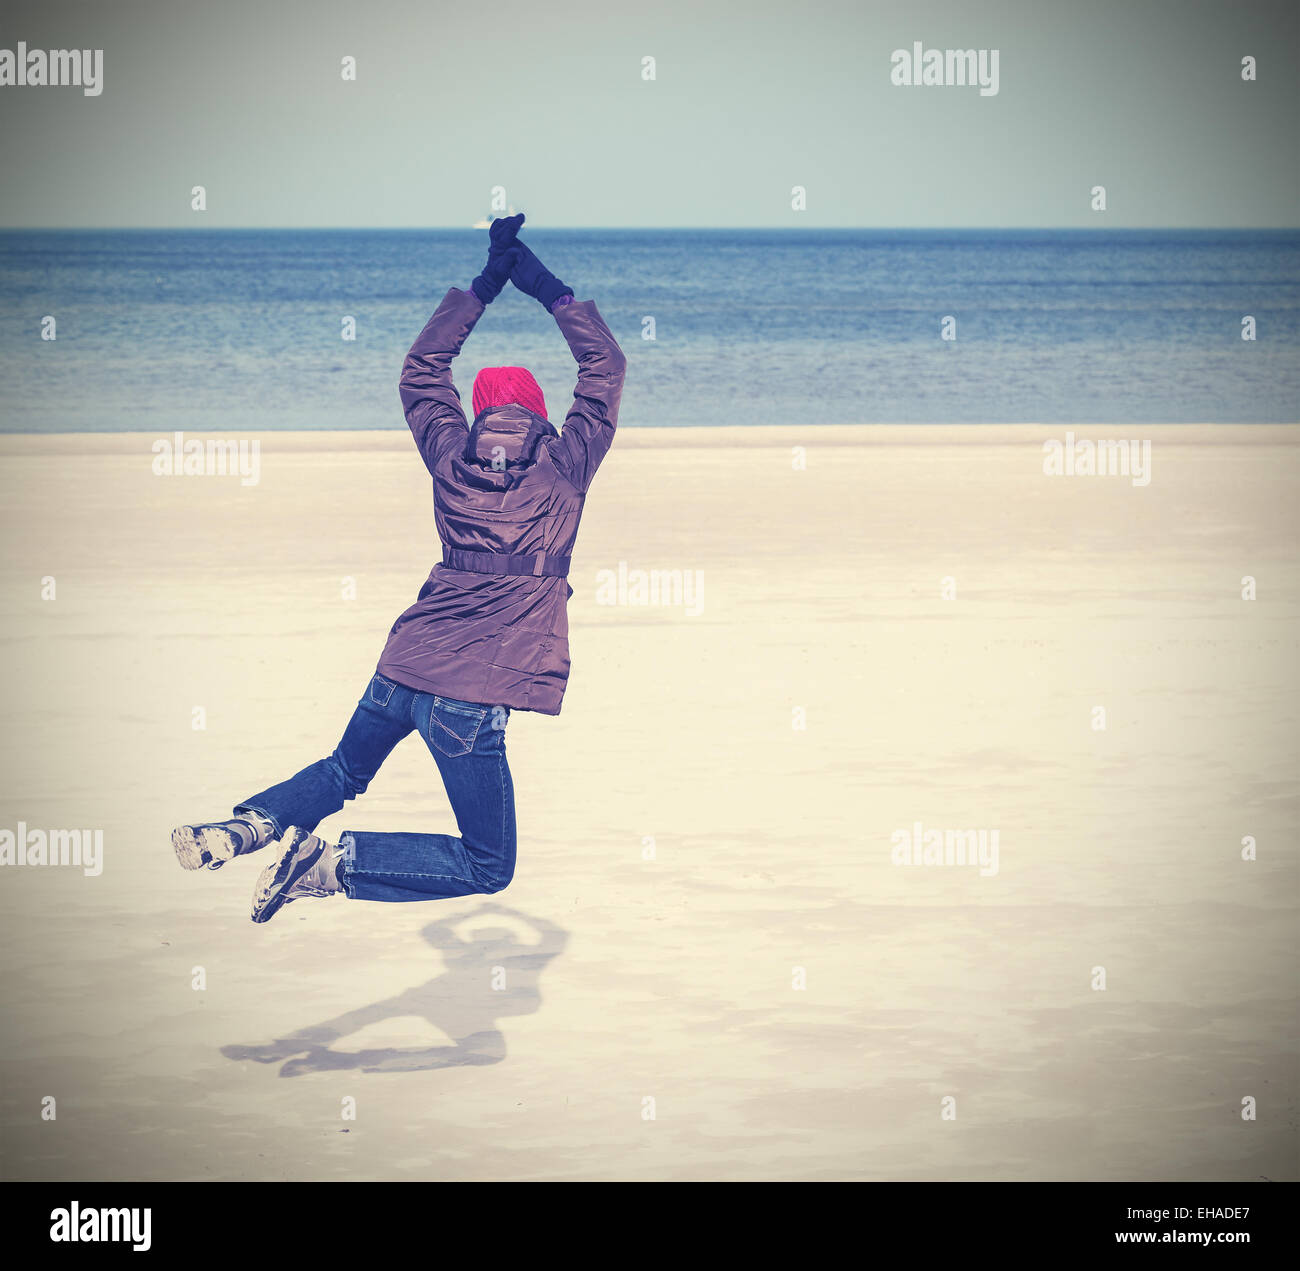 Retro filtered photo of woman jumping on beach, winter active lifestyle concept, space for text. - Stock Image